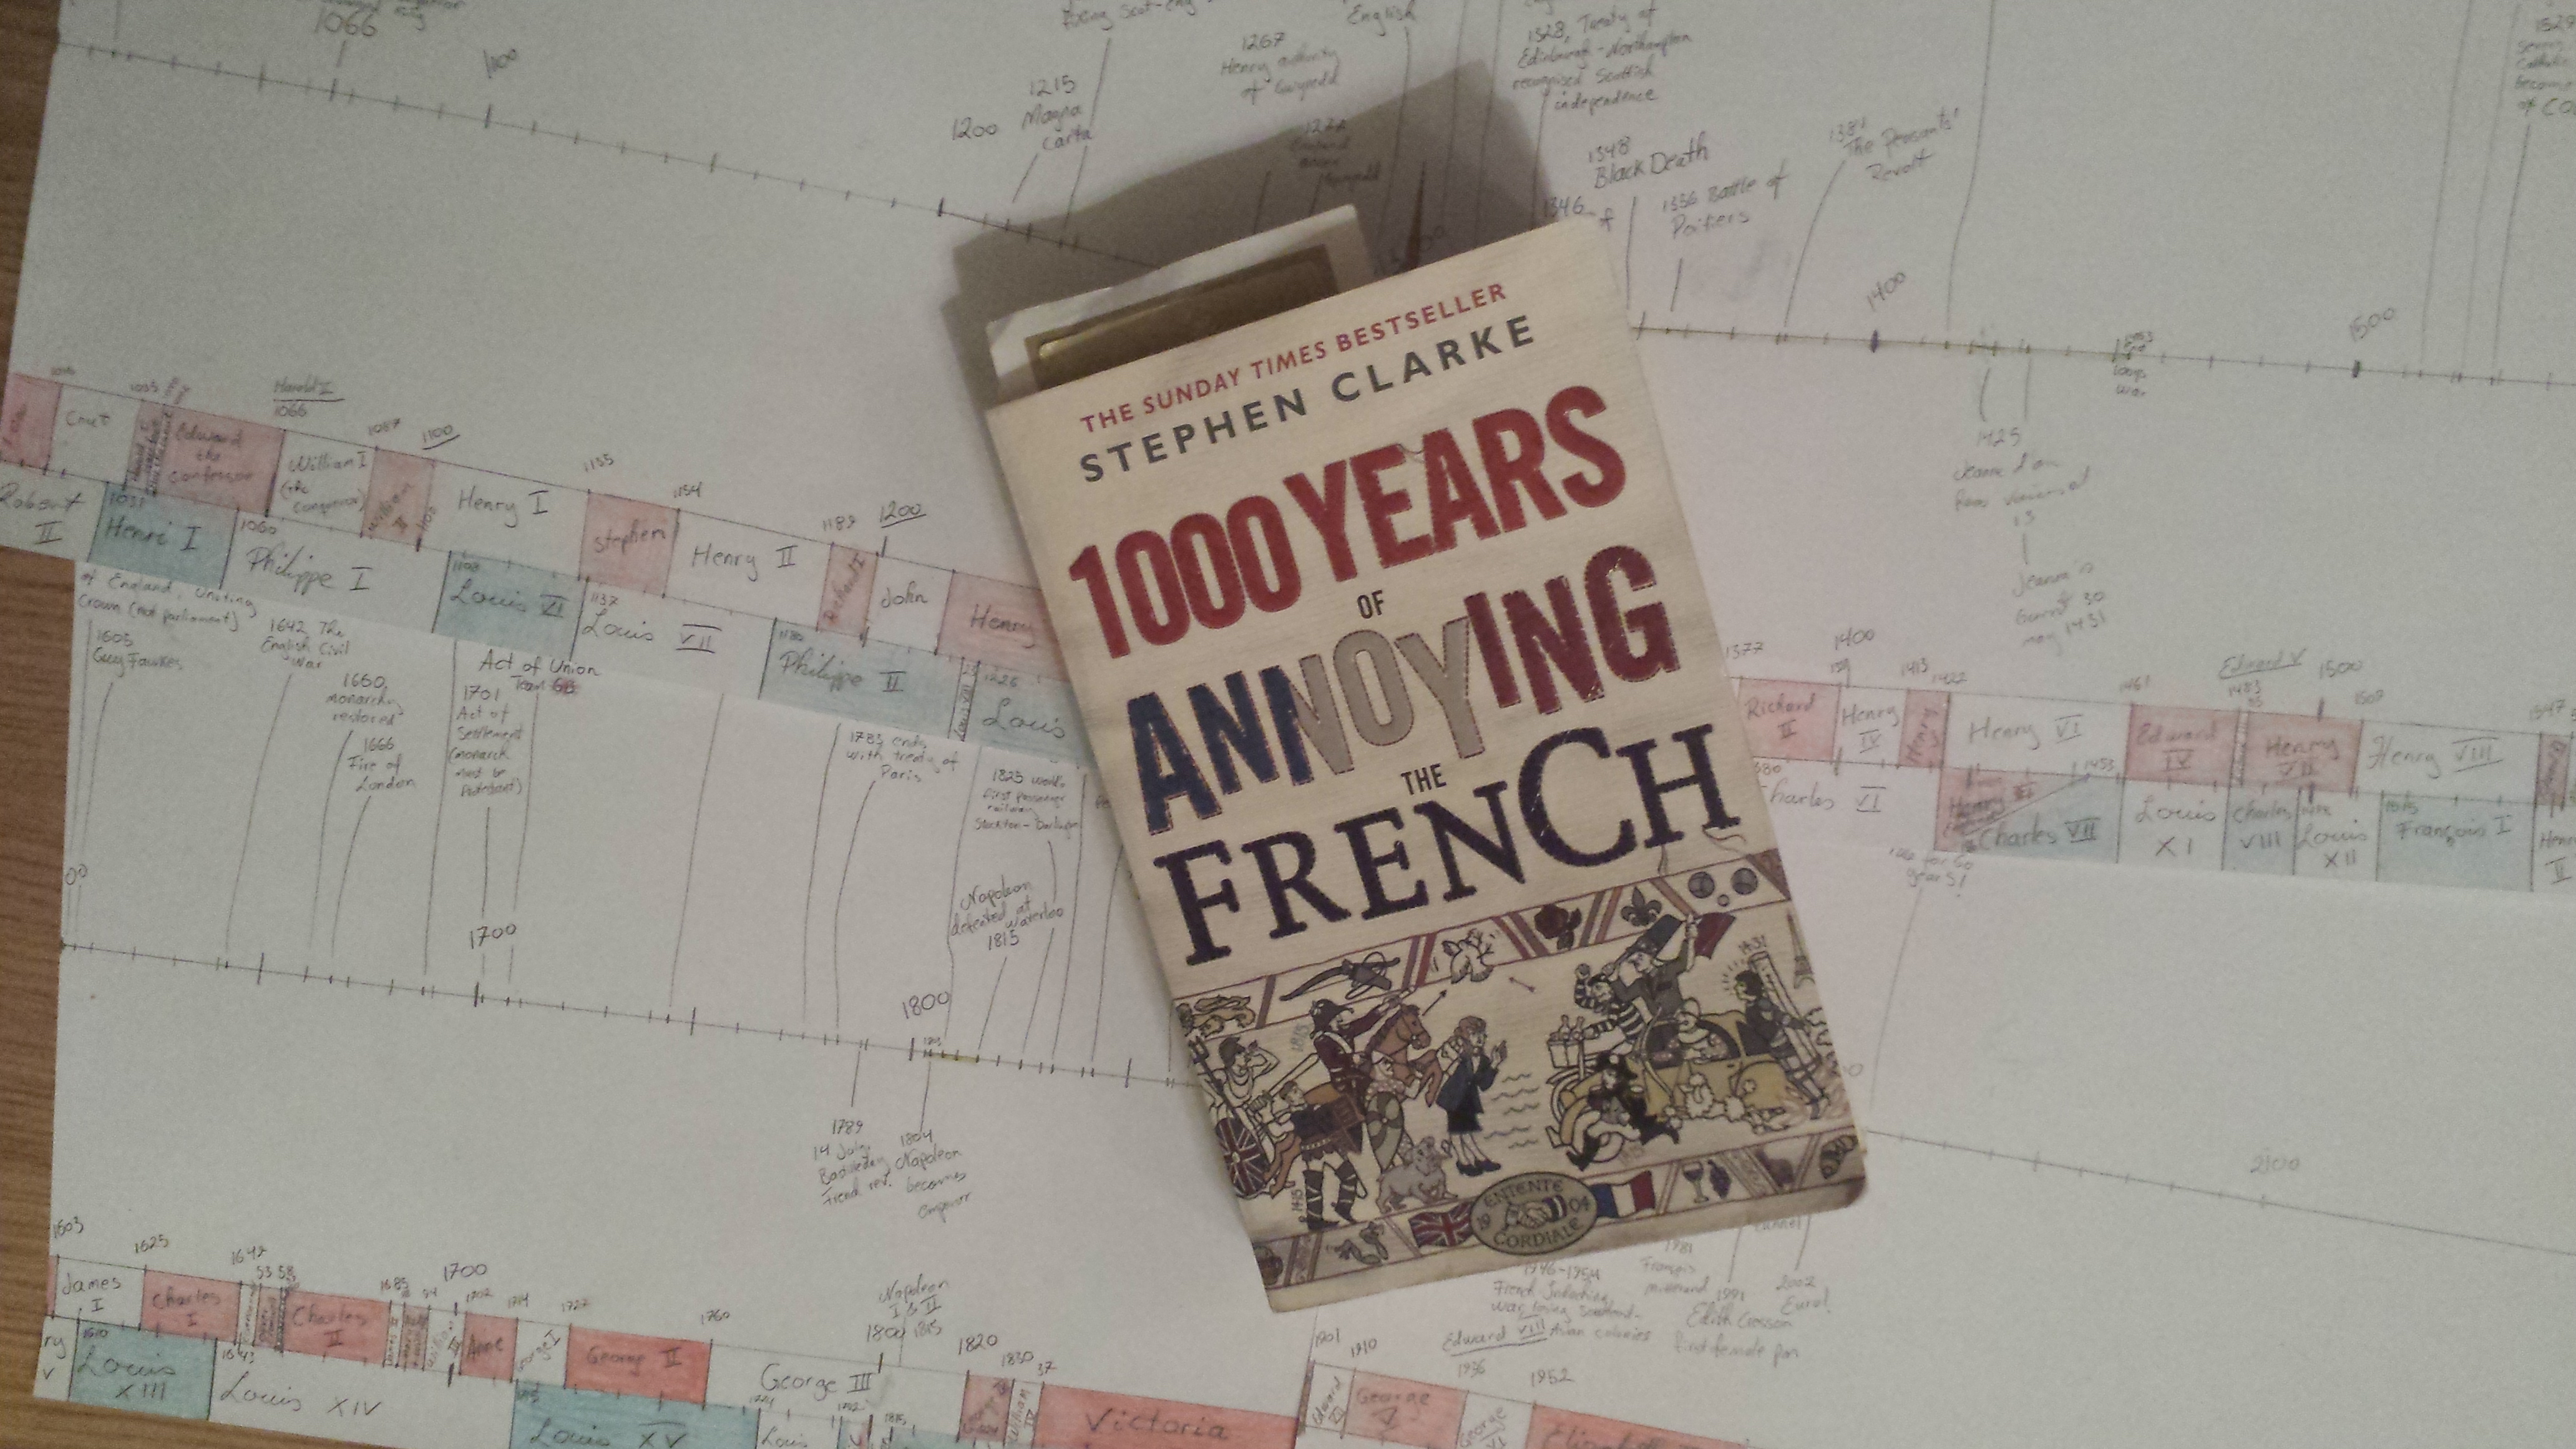 1000 years of annoying the french review